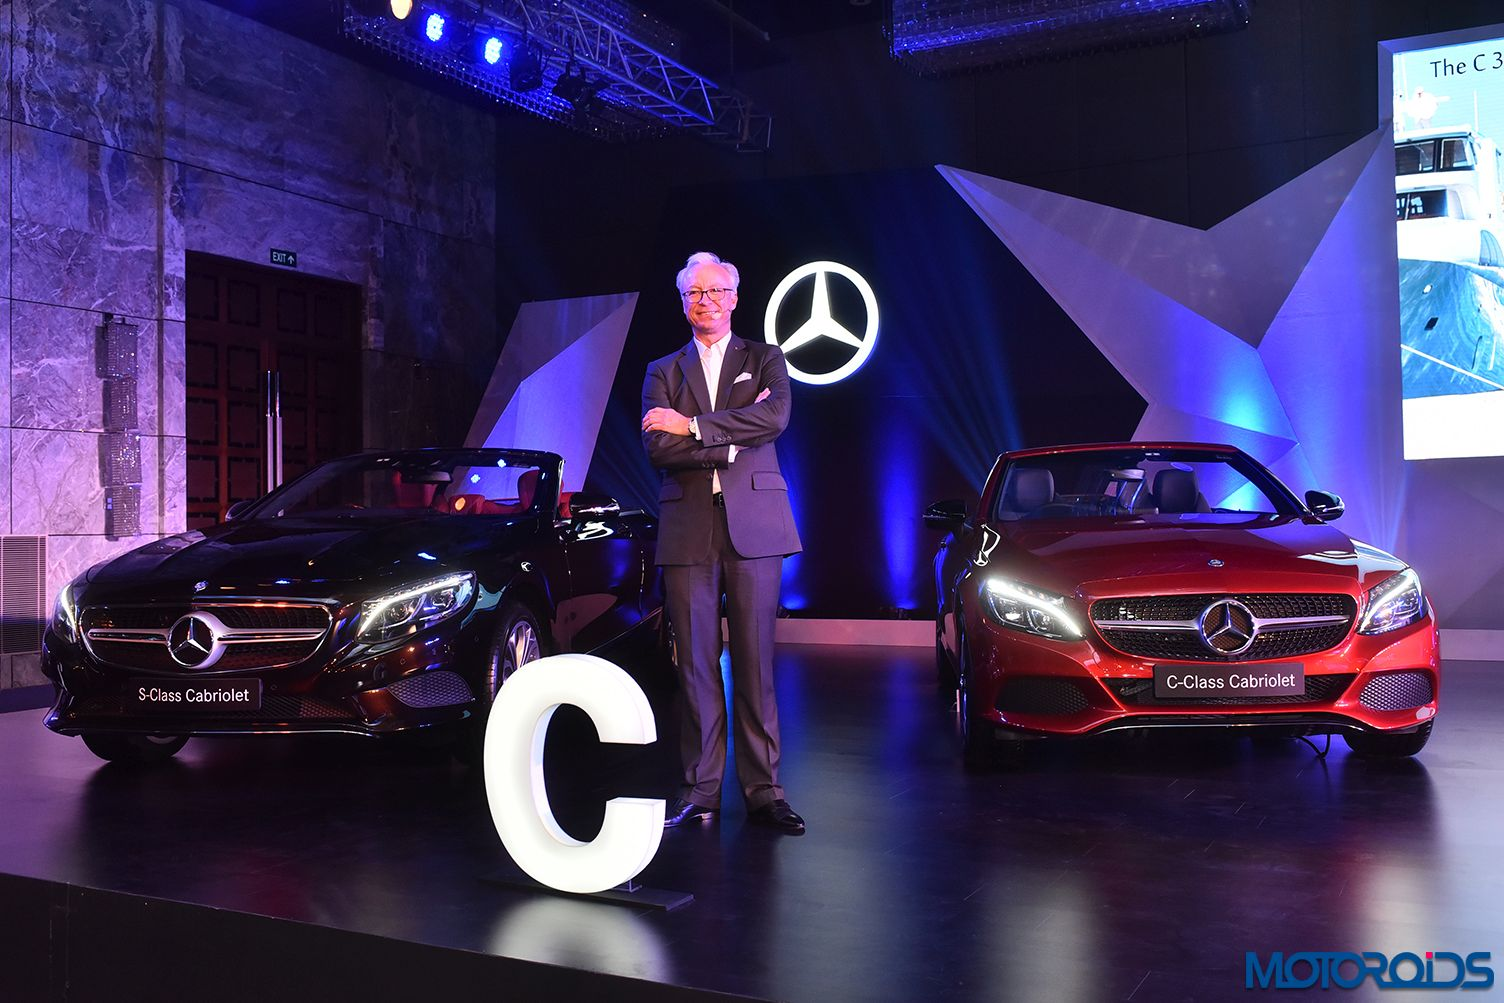 mercedes-benz-c-class-cabriolet-and-s-class-cabriolet-launch-2